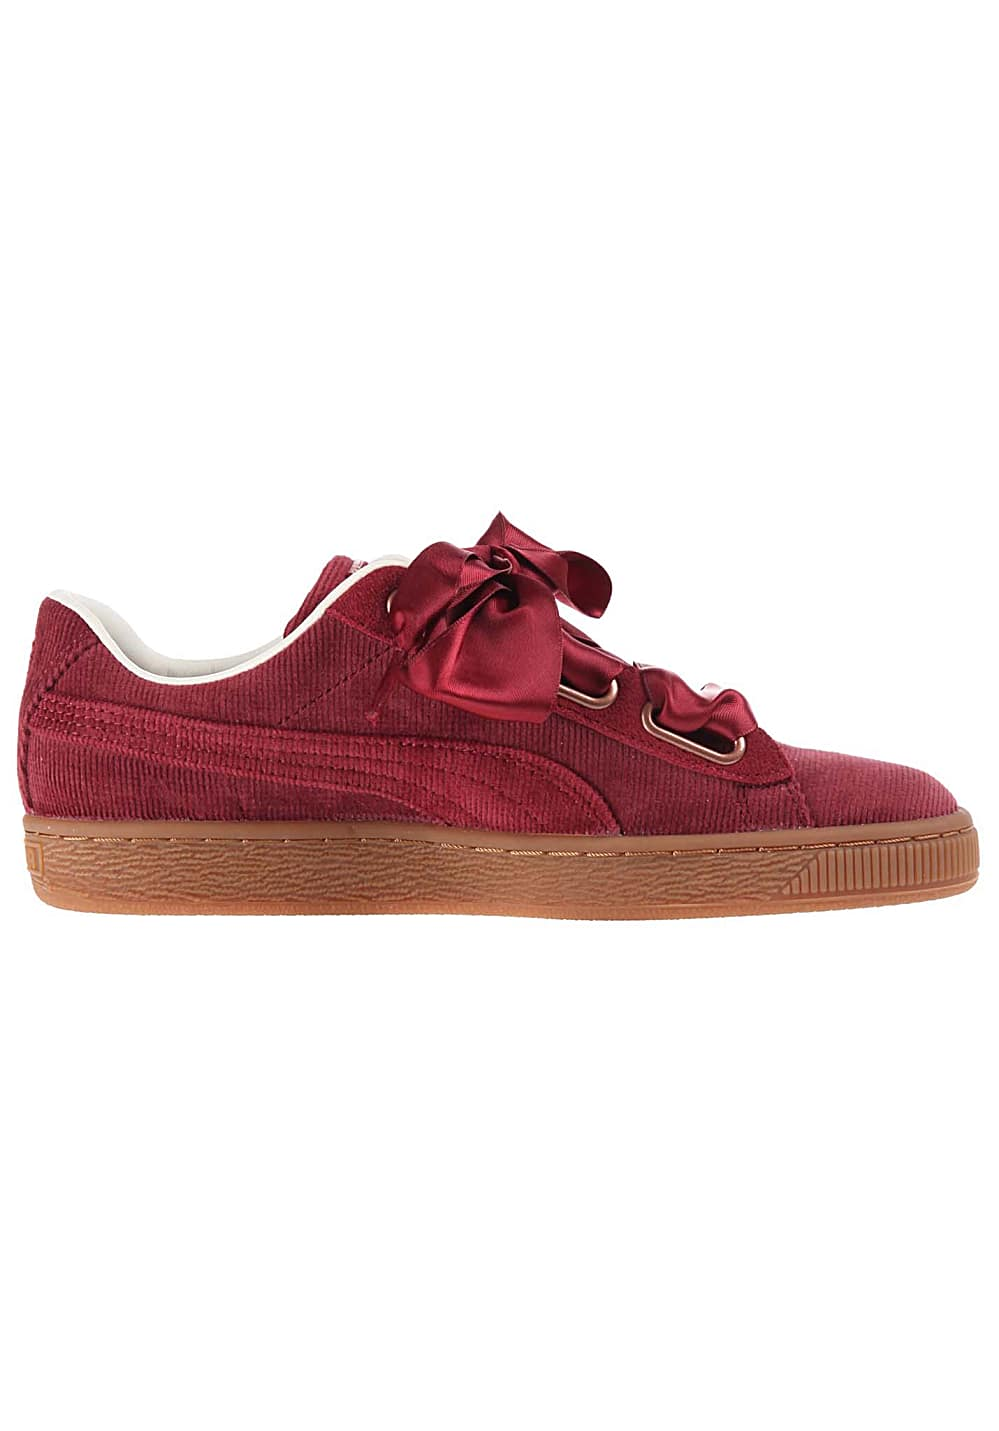 san francisco a8f91 3921b Puma Basket Heart Corduroy - Sneakers for Women - Red